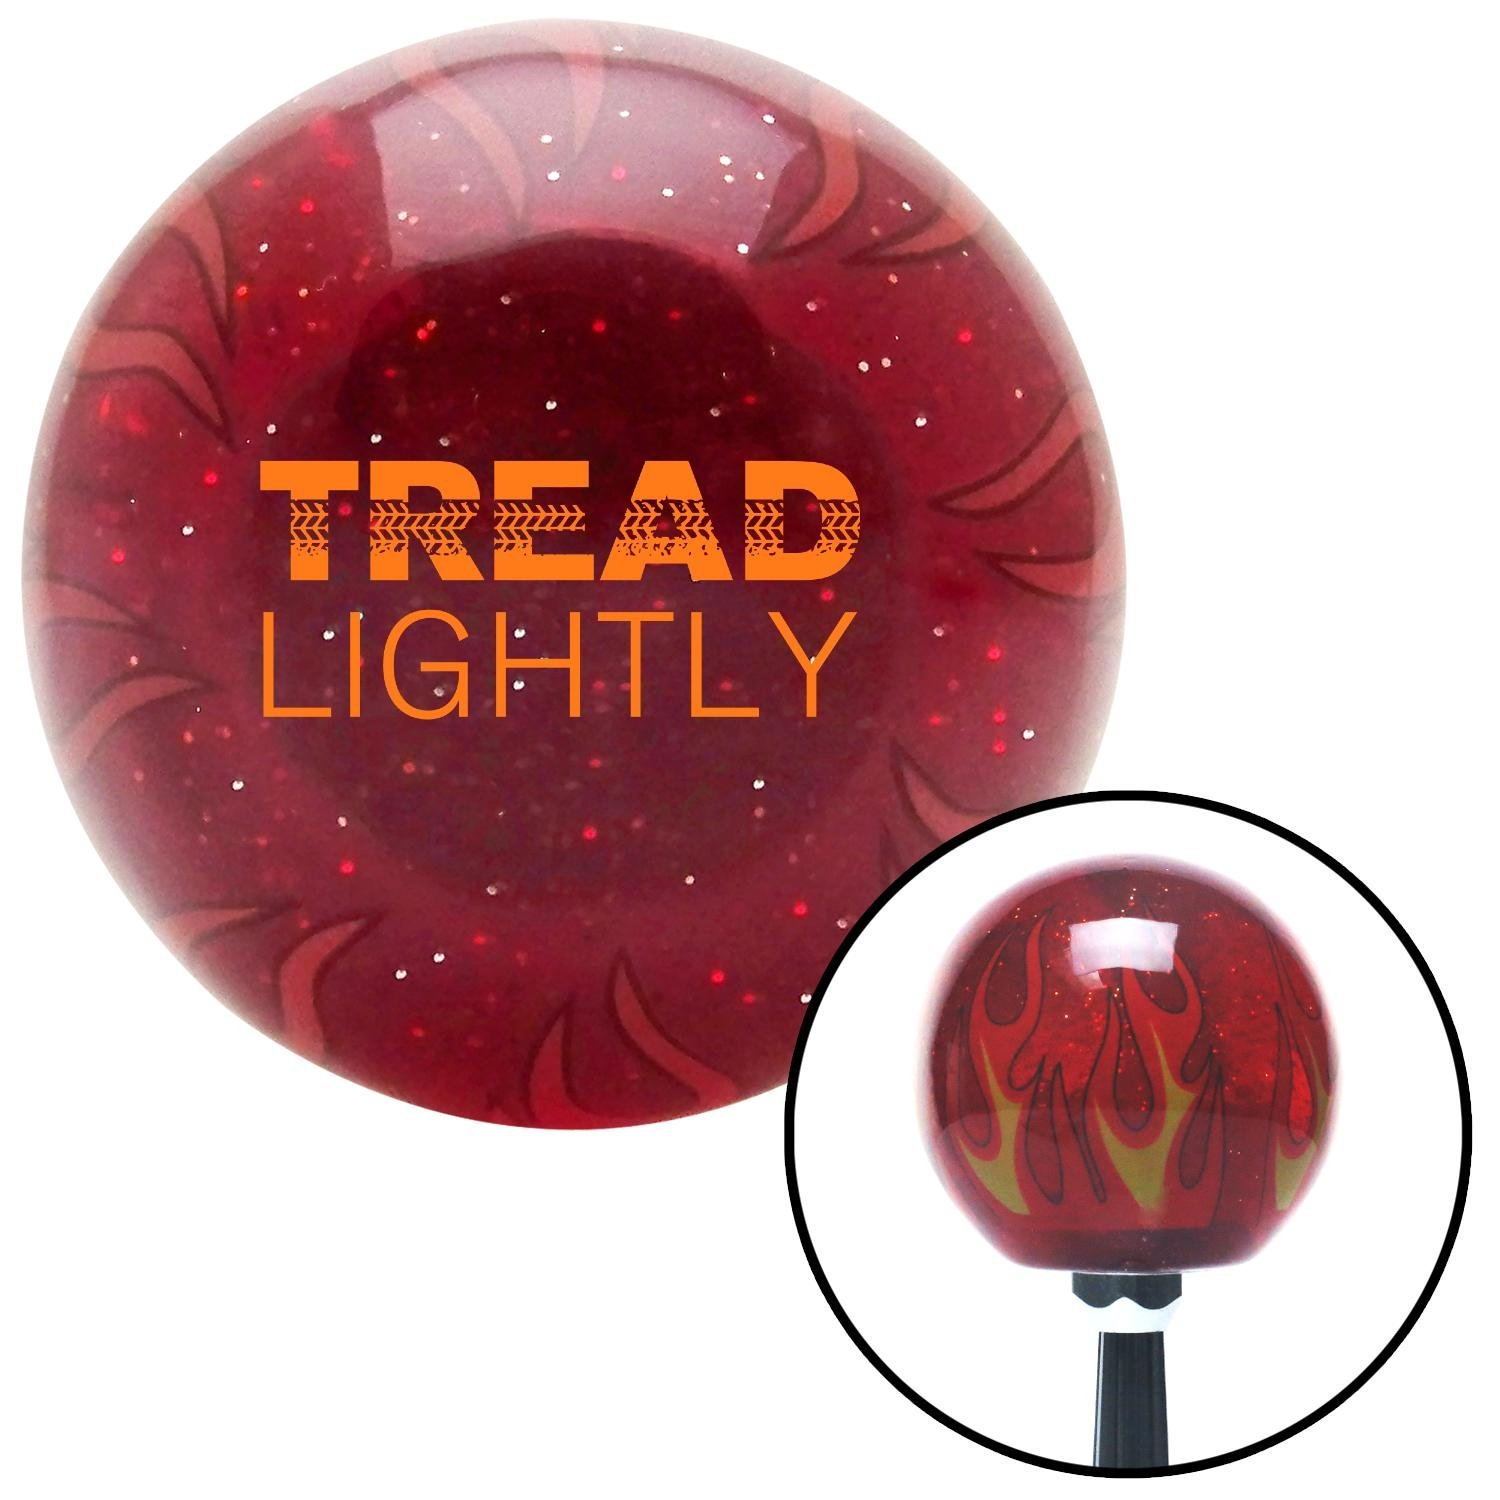 American Shifter 240127 Red Flame Metal Flake Shift Knob with M16 x 1.5 Insert Orange Tread Lightly